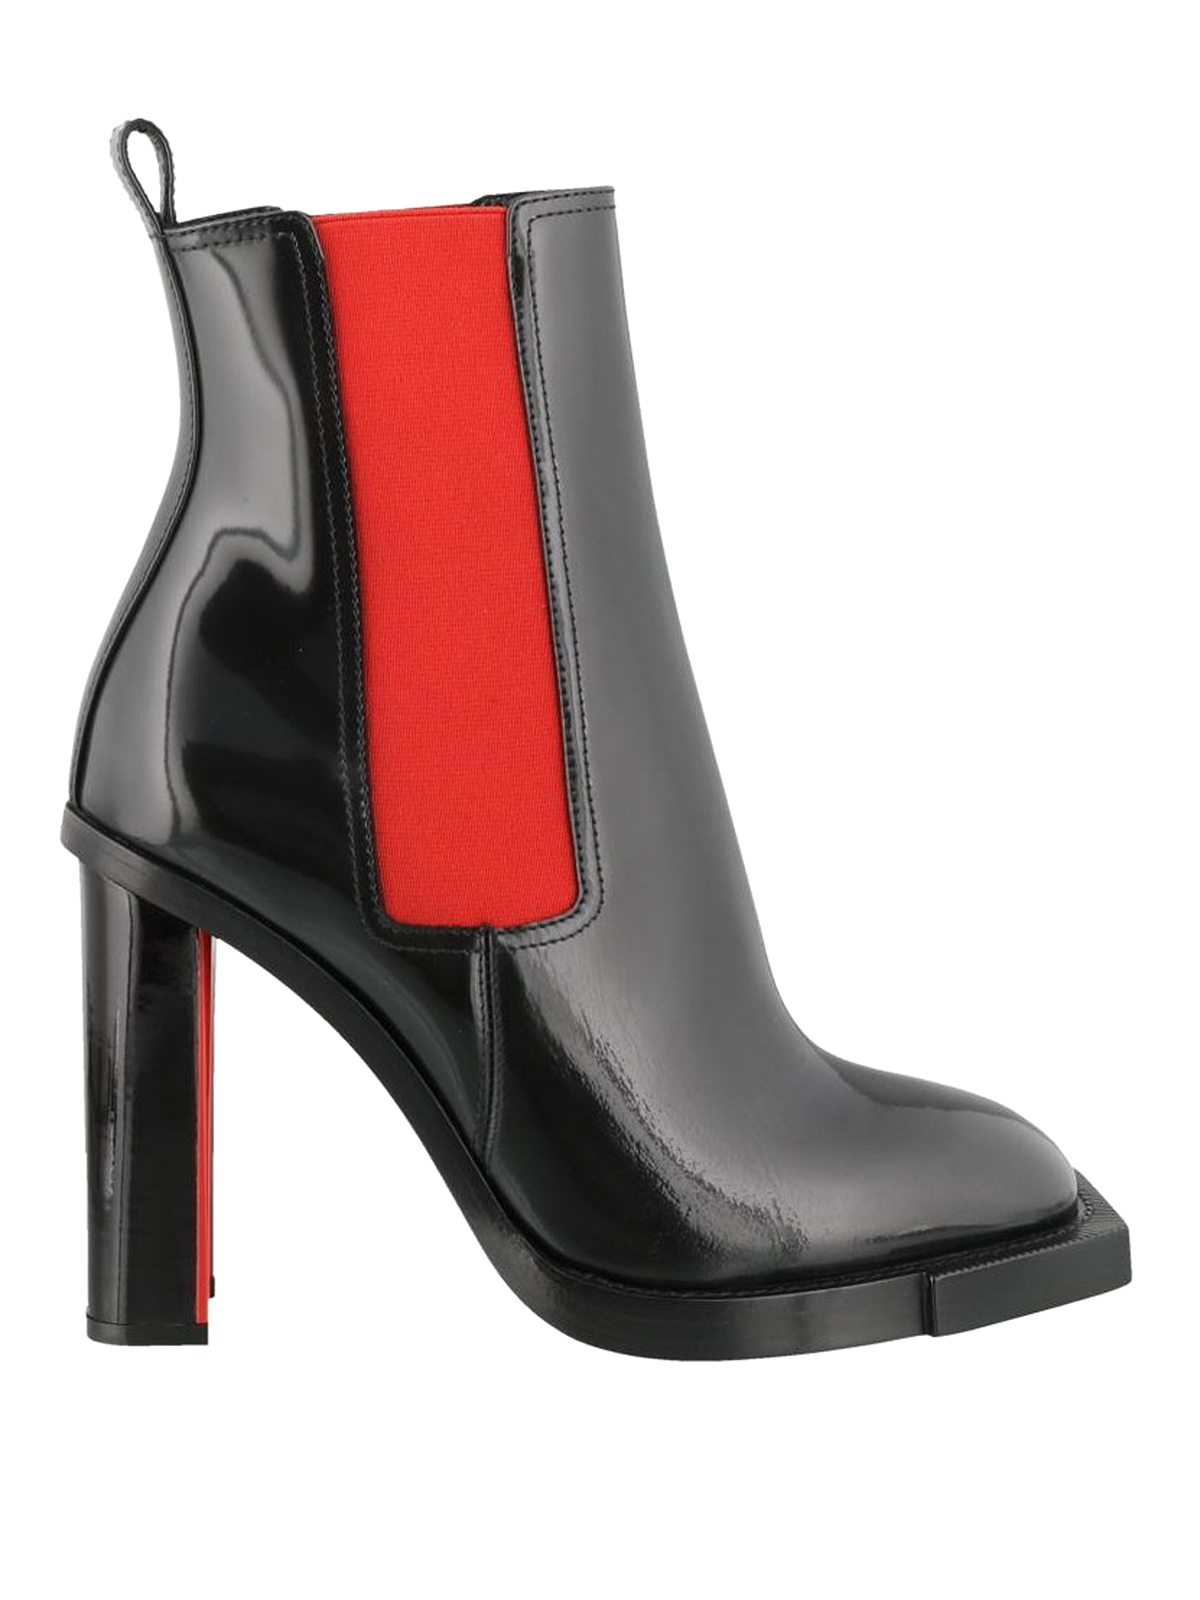 88cb4da4af44 ALEXANDER MCQUEEN  ankle boots - Brushed leather two-tone heeled booties